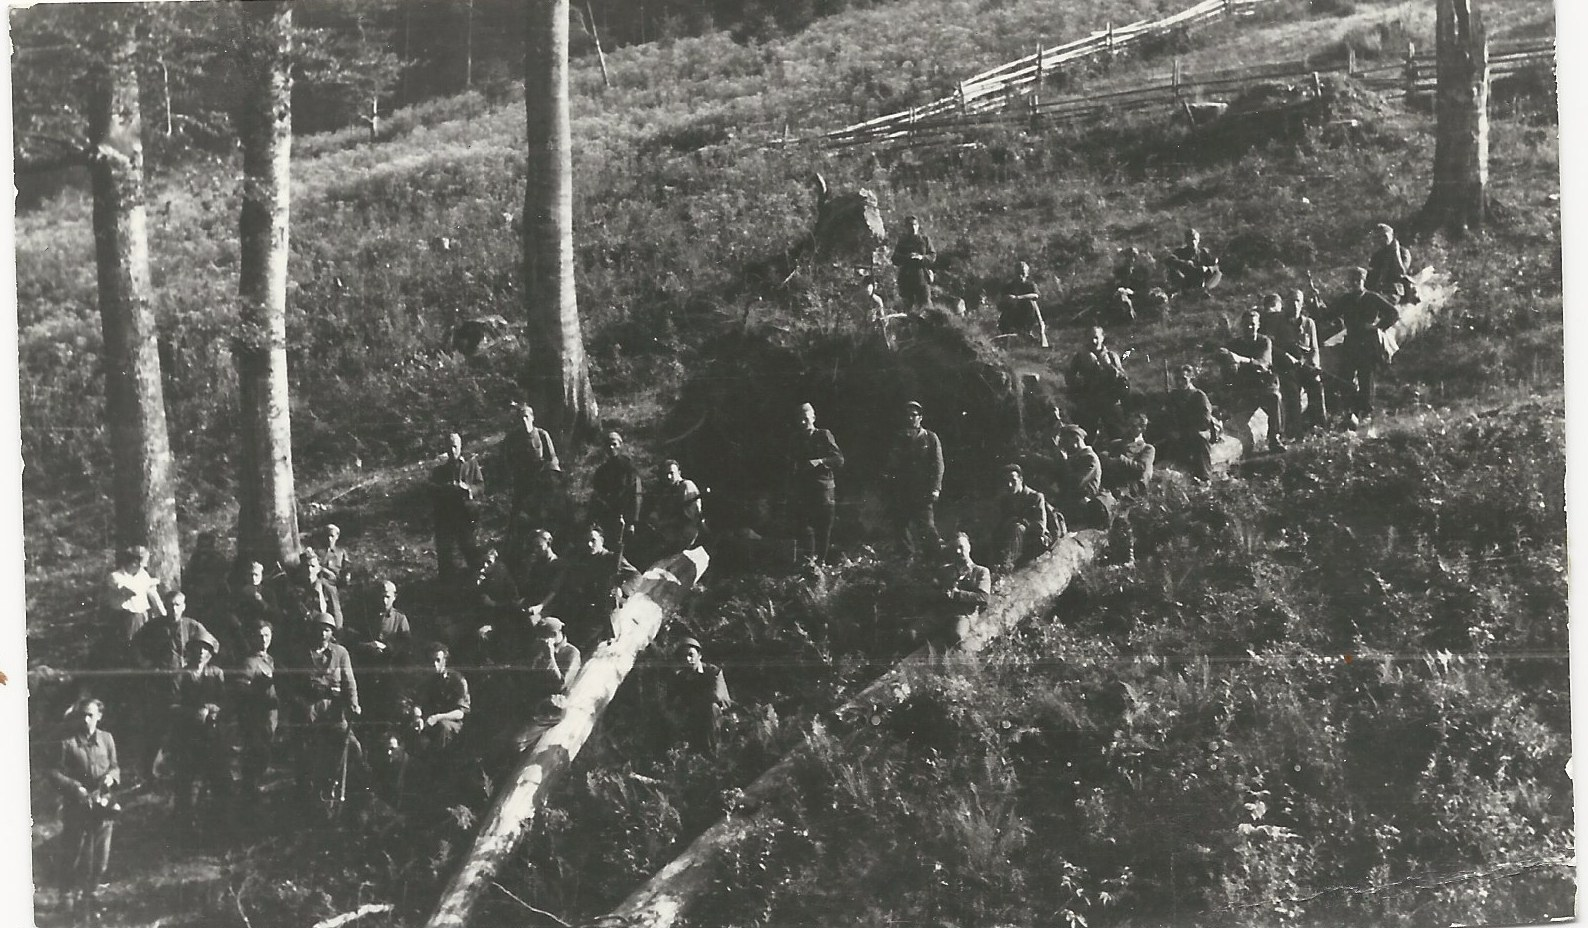 4th Battalion 1PSP AK soldiers in  the Forest of Biała Woda   Prior To Action on Zollgrenzschutz post